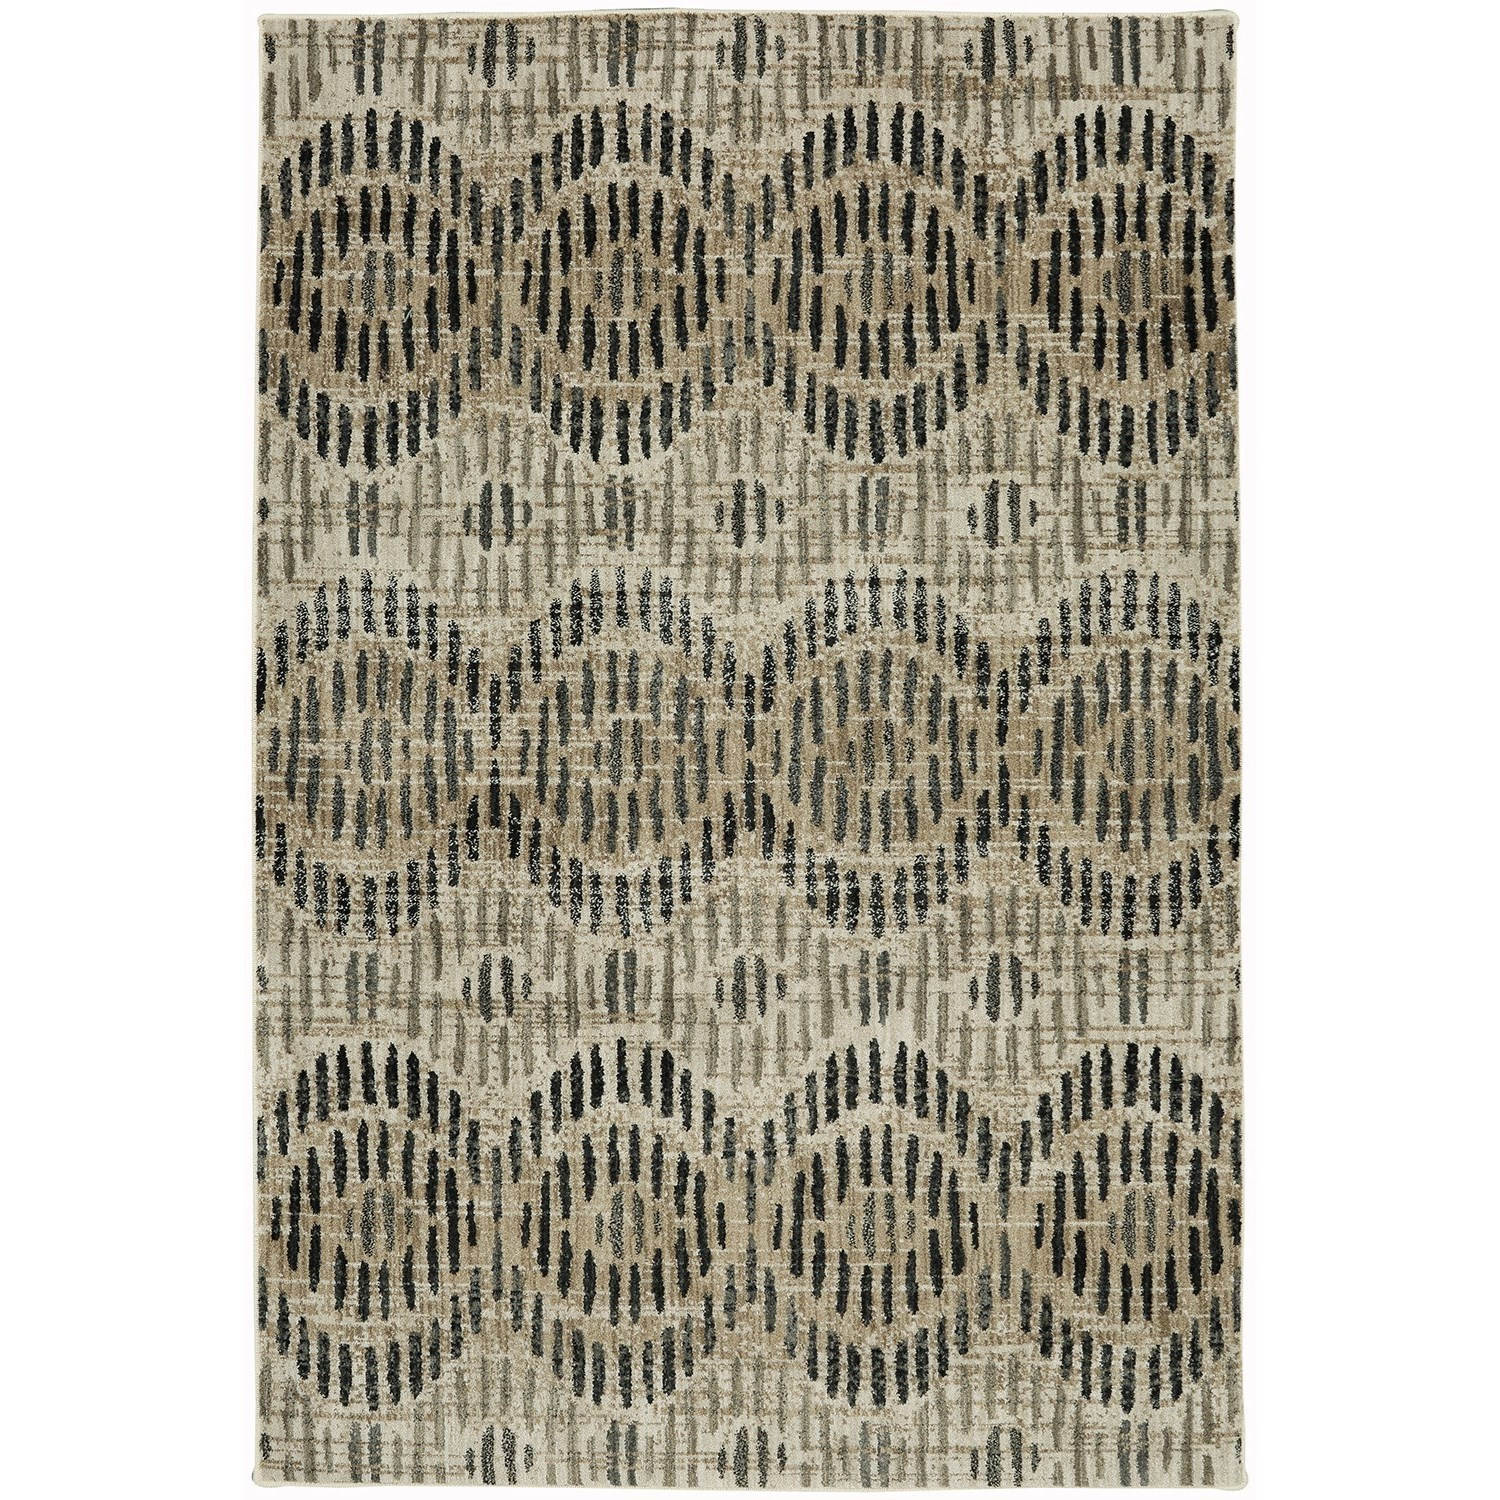 "Metropolitan 9' 6""x12' 11"" Apollo Onyx Area Rug by American Rug Craftsmen at Alison Craig Home Furnishings"